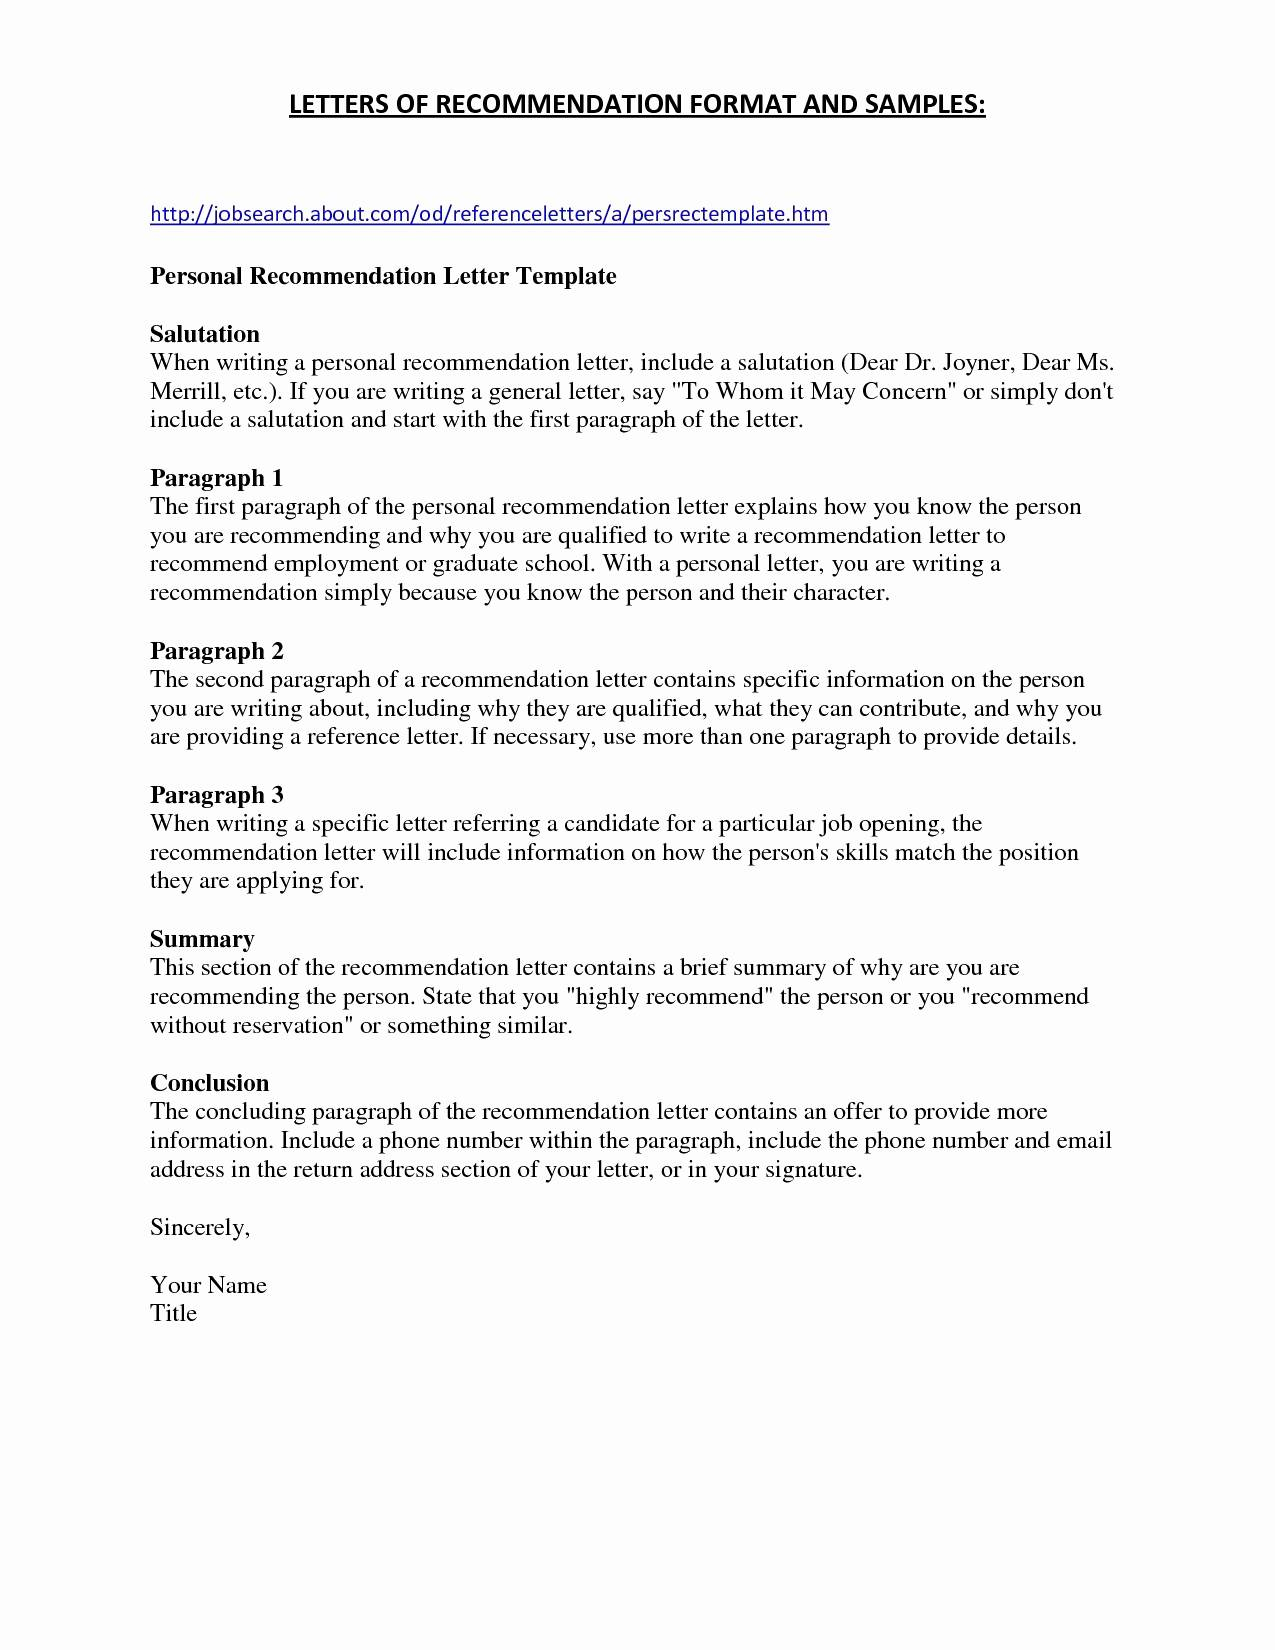 Executive assistant Cover Letter Template - Real Estate Receptionist Cover Letter Awesome 11 Unique Cover Letter